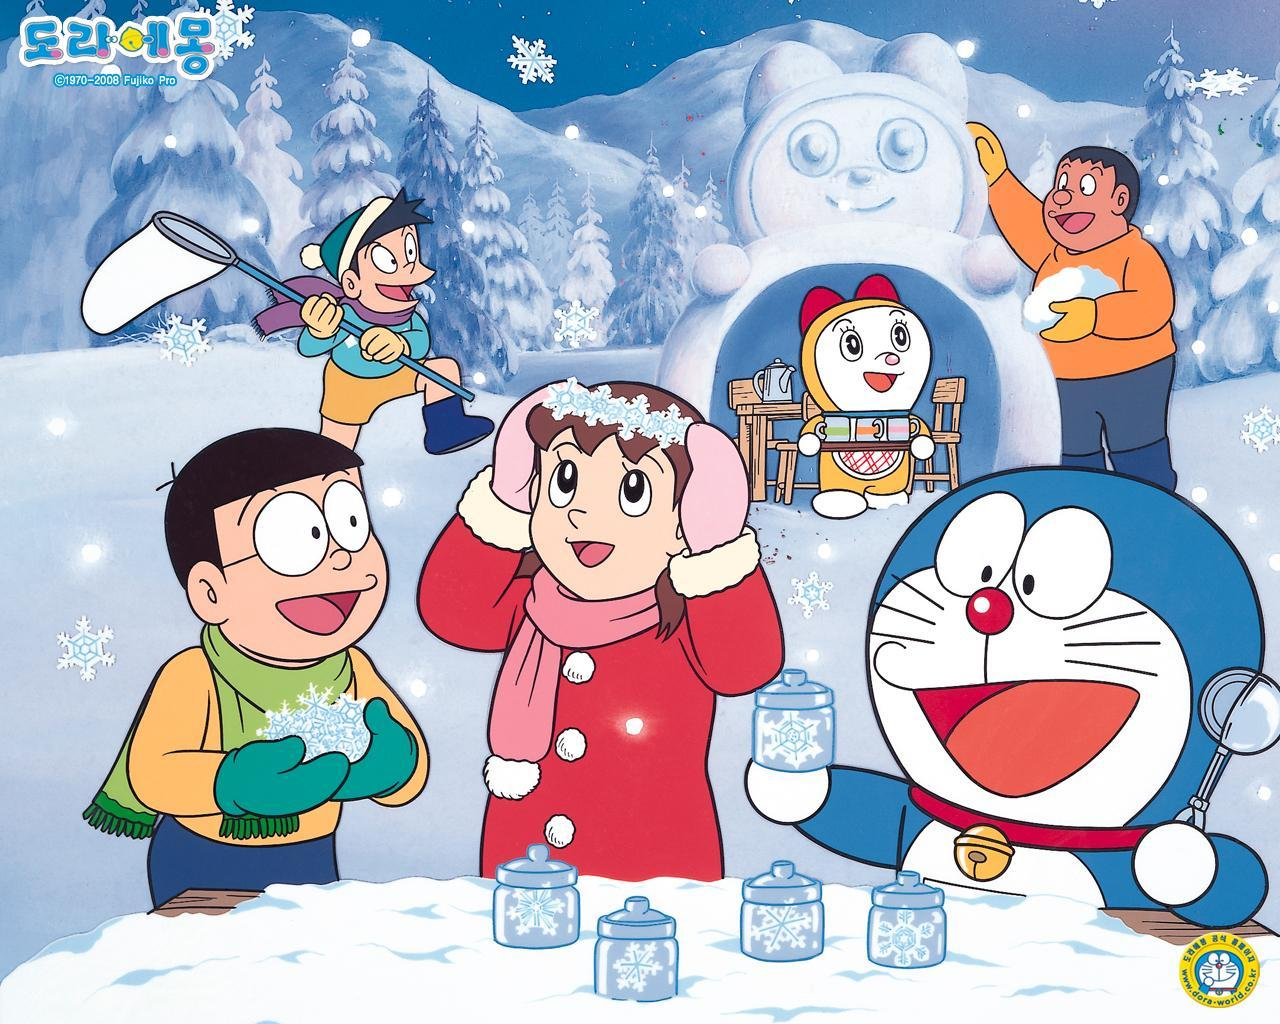 Anime Wallpaper For Doraemon New For Android APK